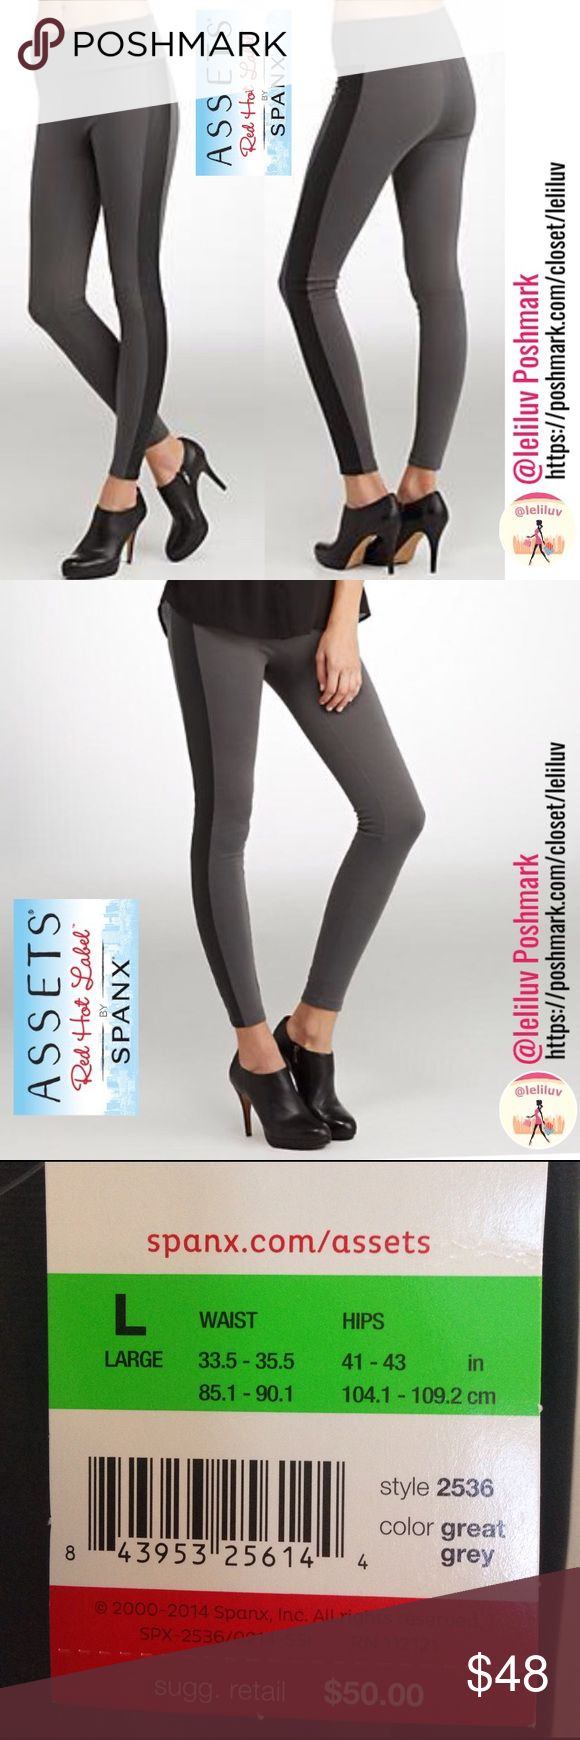 "🎉HP🎉 Racing shapewear leggings w/ leather stripe NWT (check pic. for size chart). Structured slimming Racing gray leggings.  • Slims and smoothes from tummy to legs • Wide, double-layer mesh waistband flattens tummy  • Flattering fabric  • Leather-like side panels add a trendy finish  89% Polyester, 11% Spandex/Elastane 📐Length 41.5"", Waist: 14.5"", Hips: 17.5"", Inseam: 29.5""📍Leg opening: 4.5""🎉Host Pick ""Classic Style"" 3/14/17🎉  Wear with heels for a more polished look, or…"